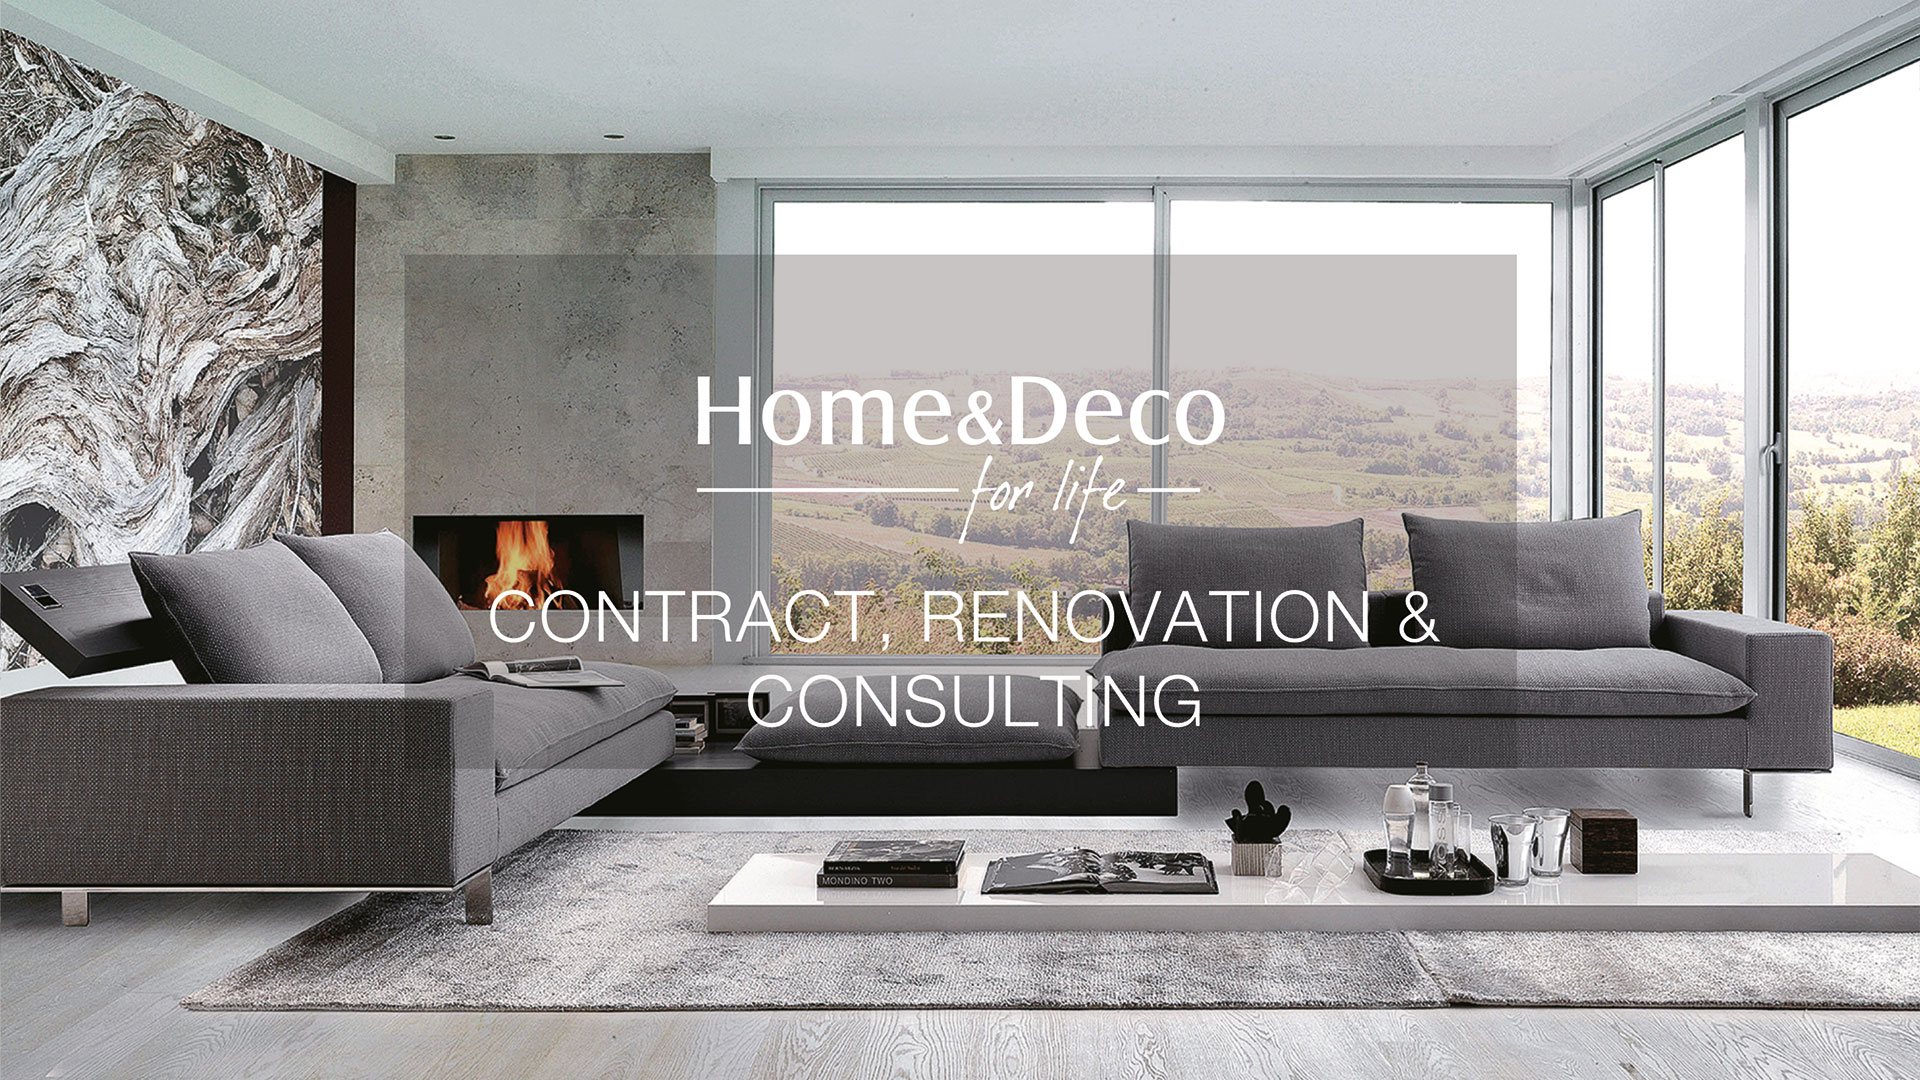 at home interior design consultants home interior renovations by remodeling consultants Contract, Renovation u0026 Consulting | Furniture Cyprus | Furniture Limassol |  HomeDeco for Life!